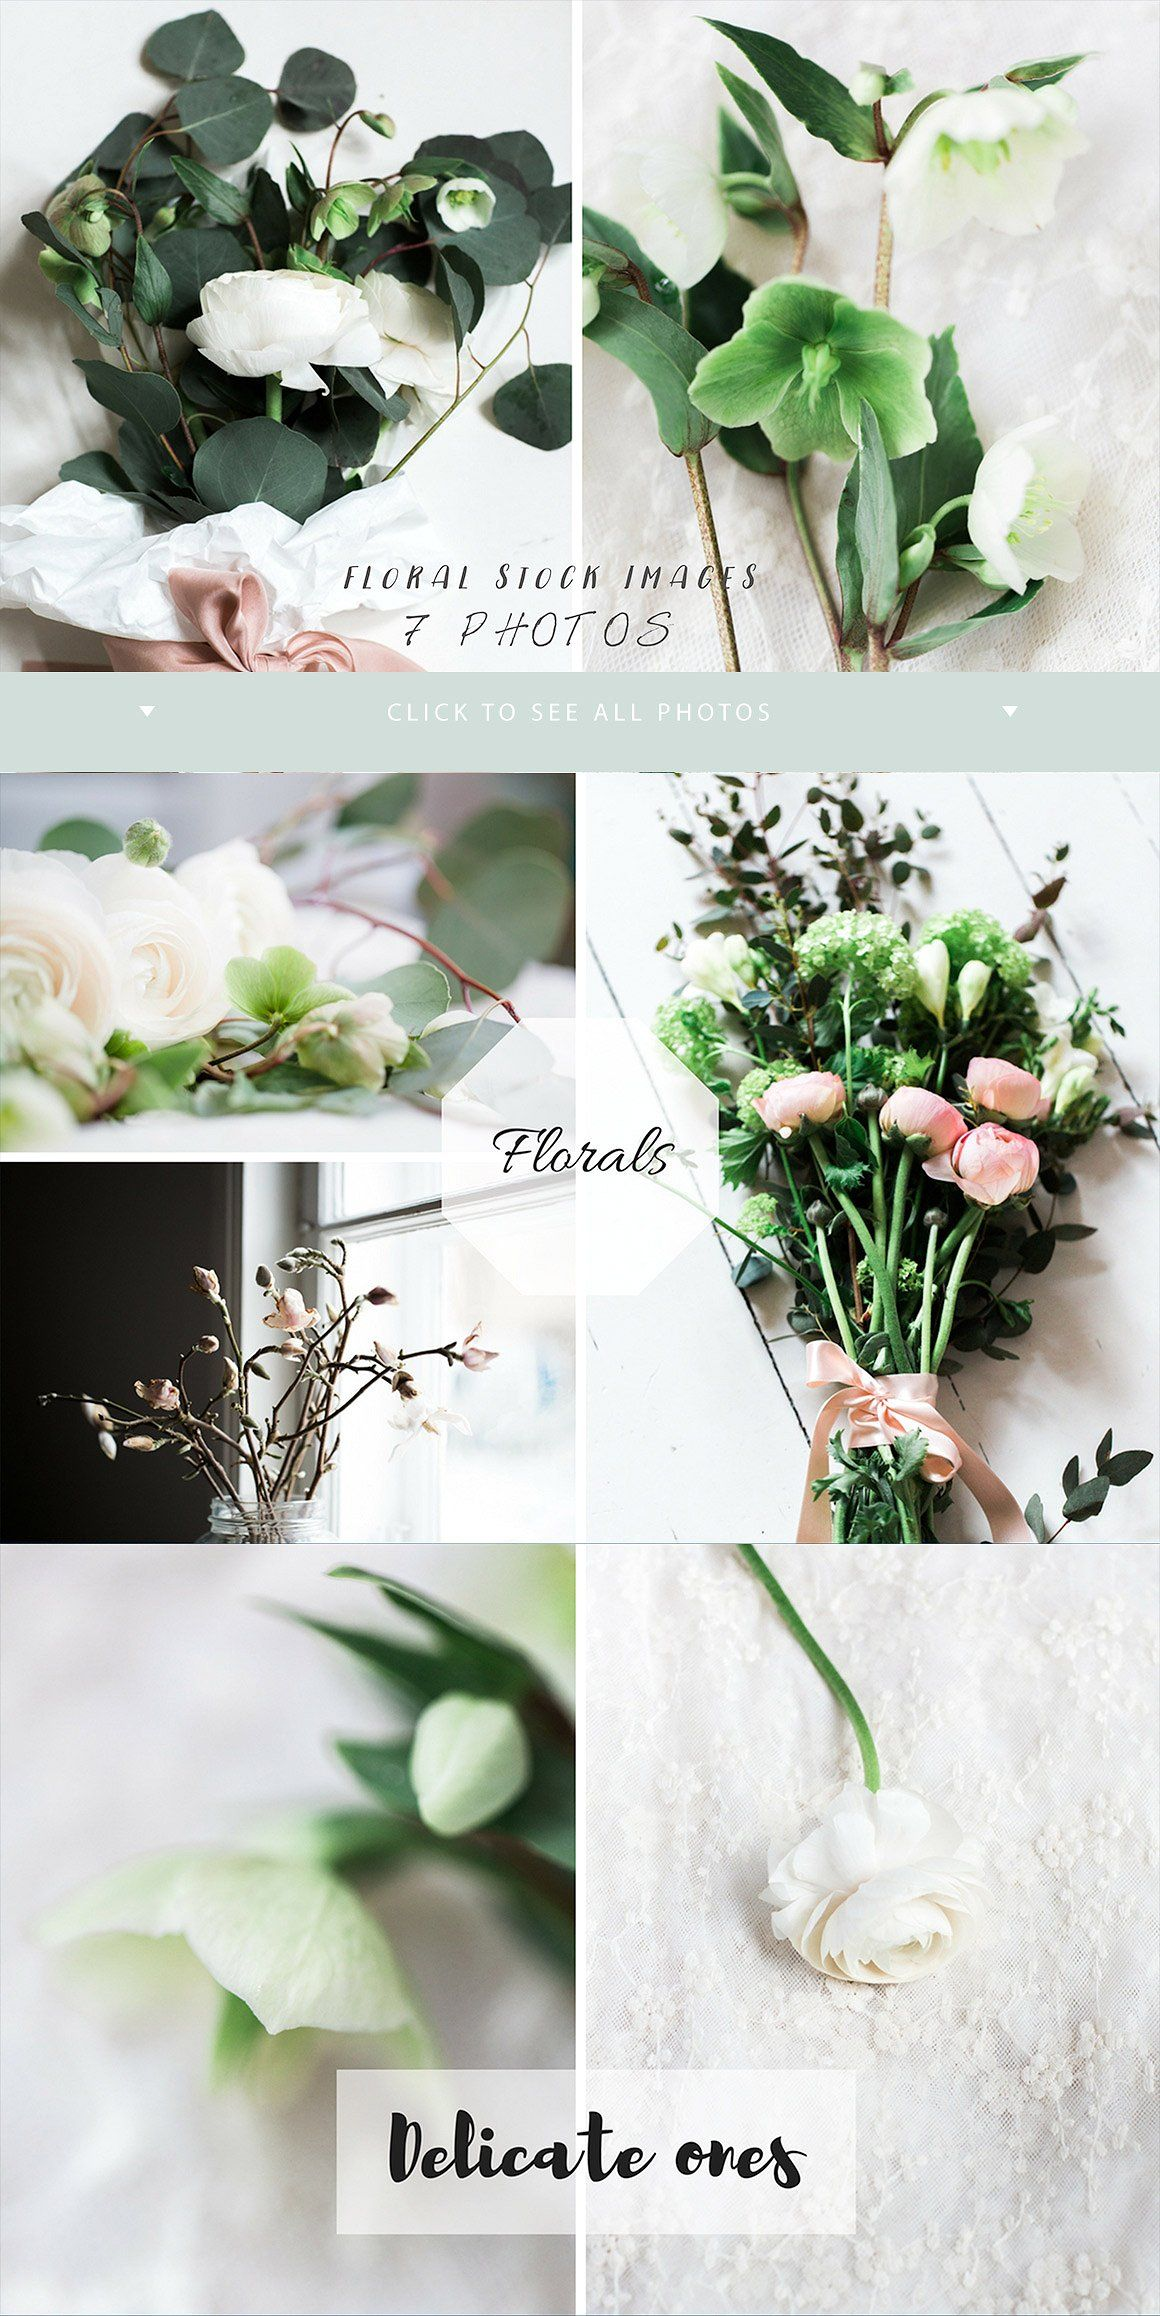 Flower Stock Photos White Winter 7 Product Mockups Group